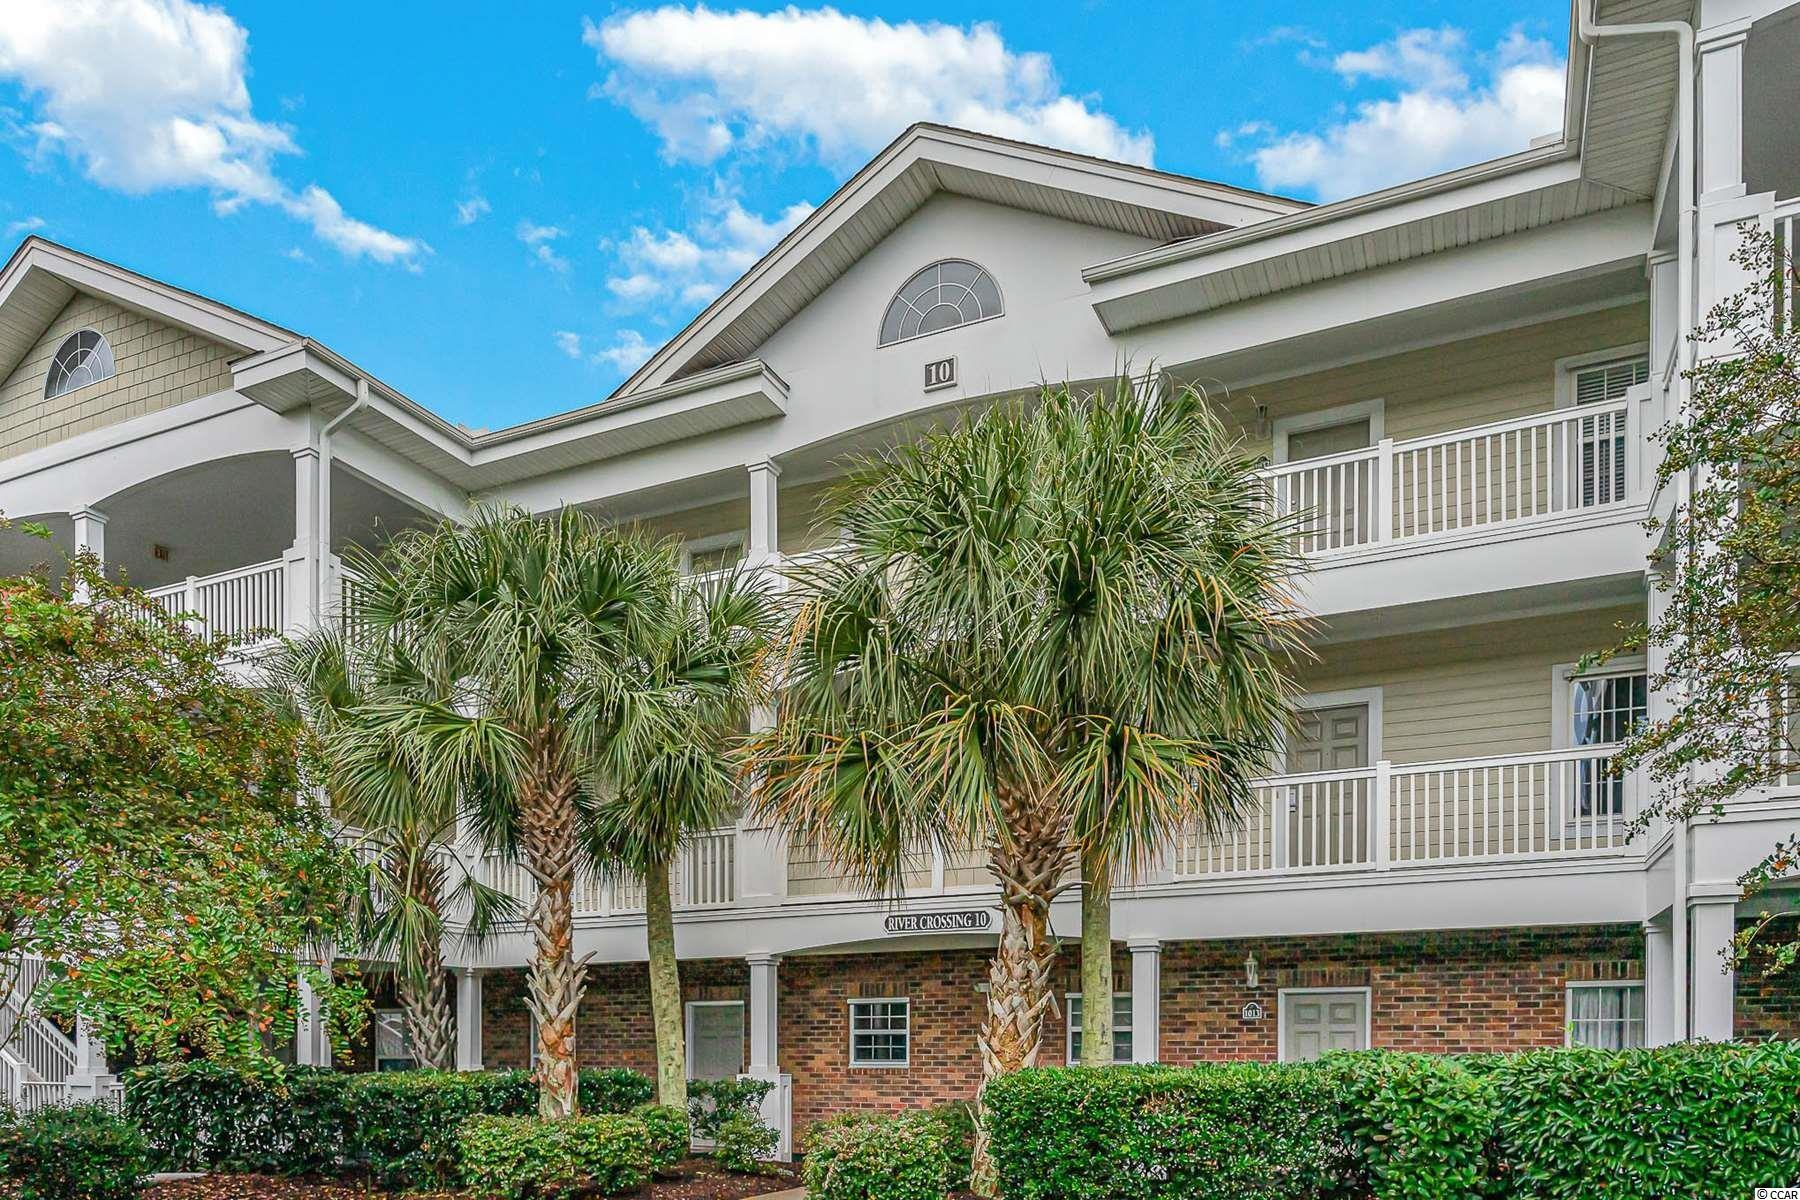 Welcome to this fully furnished, 2 bed, 2 bath unit in the highly sought after, River Crossing at Barefoot Resort. This unit features an open floor plan. The kitchen has an open window looking into the living & dining areas and plenty of cabinet and counter space. Each bedroom is spacious and offers ample closet space. Spend your afternoons relaxing on your balcony with. your favorite beverage.  River Crossing owners can enjoy access to all of the Barefoot amenities, including outdoor pools, clubhouse, tennis courts, oceanfront cabana, members club, and so much more! Hurry & schedule your showing today!